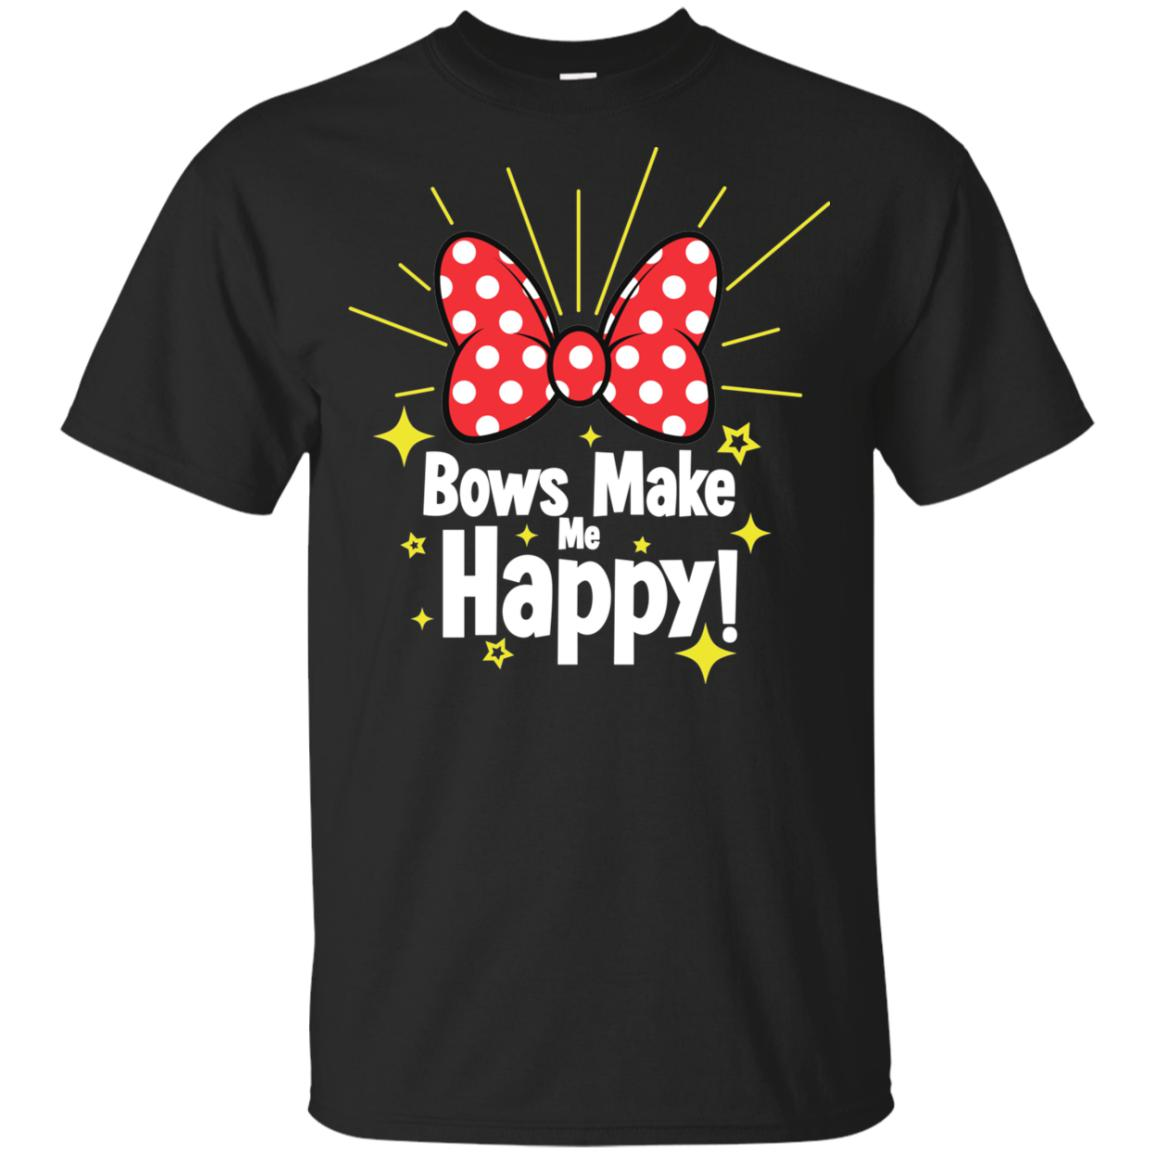 Bows Make Me Happy - Gildan Youth Ultra Cotton T-Shirt